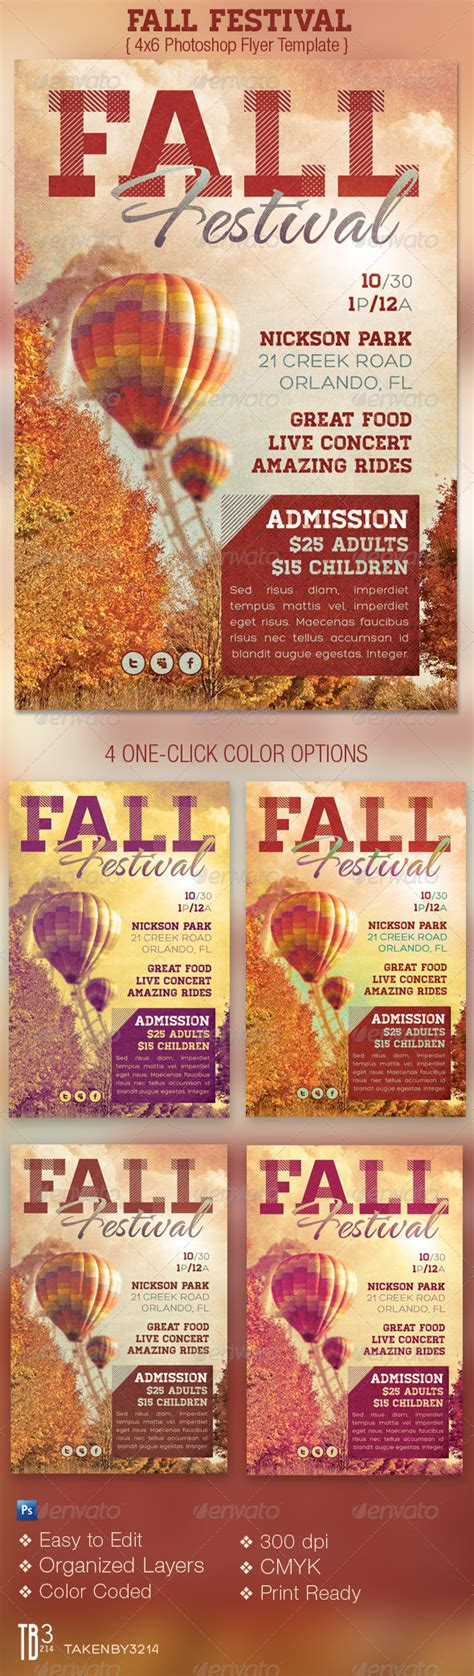 fall festival flyer template fall festival event flyer template by godserv2 graphicriver